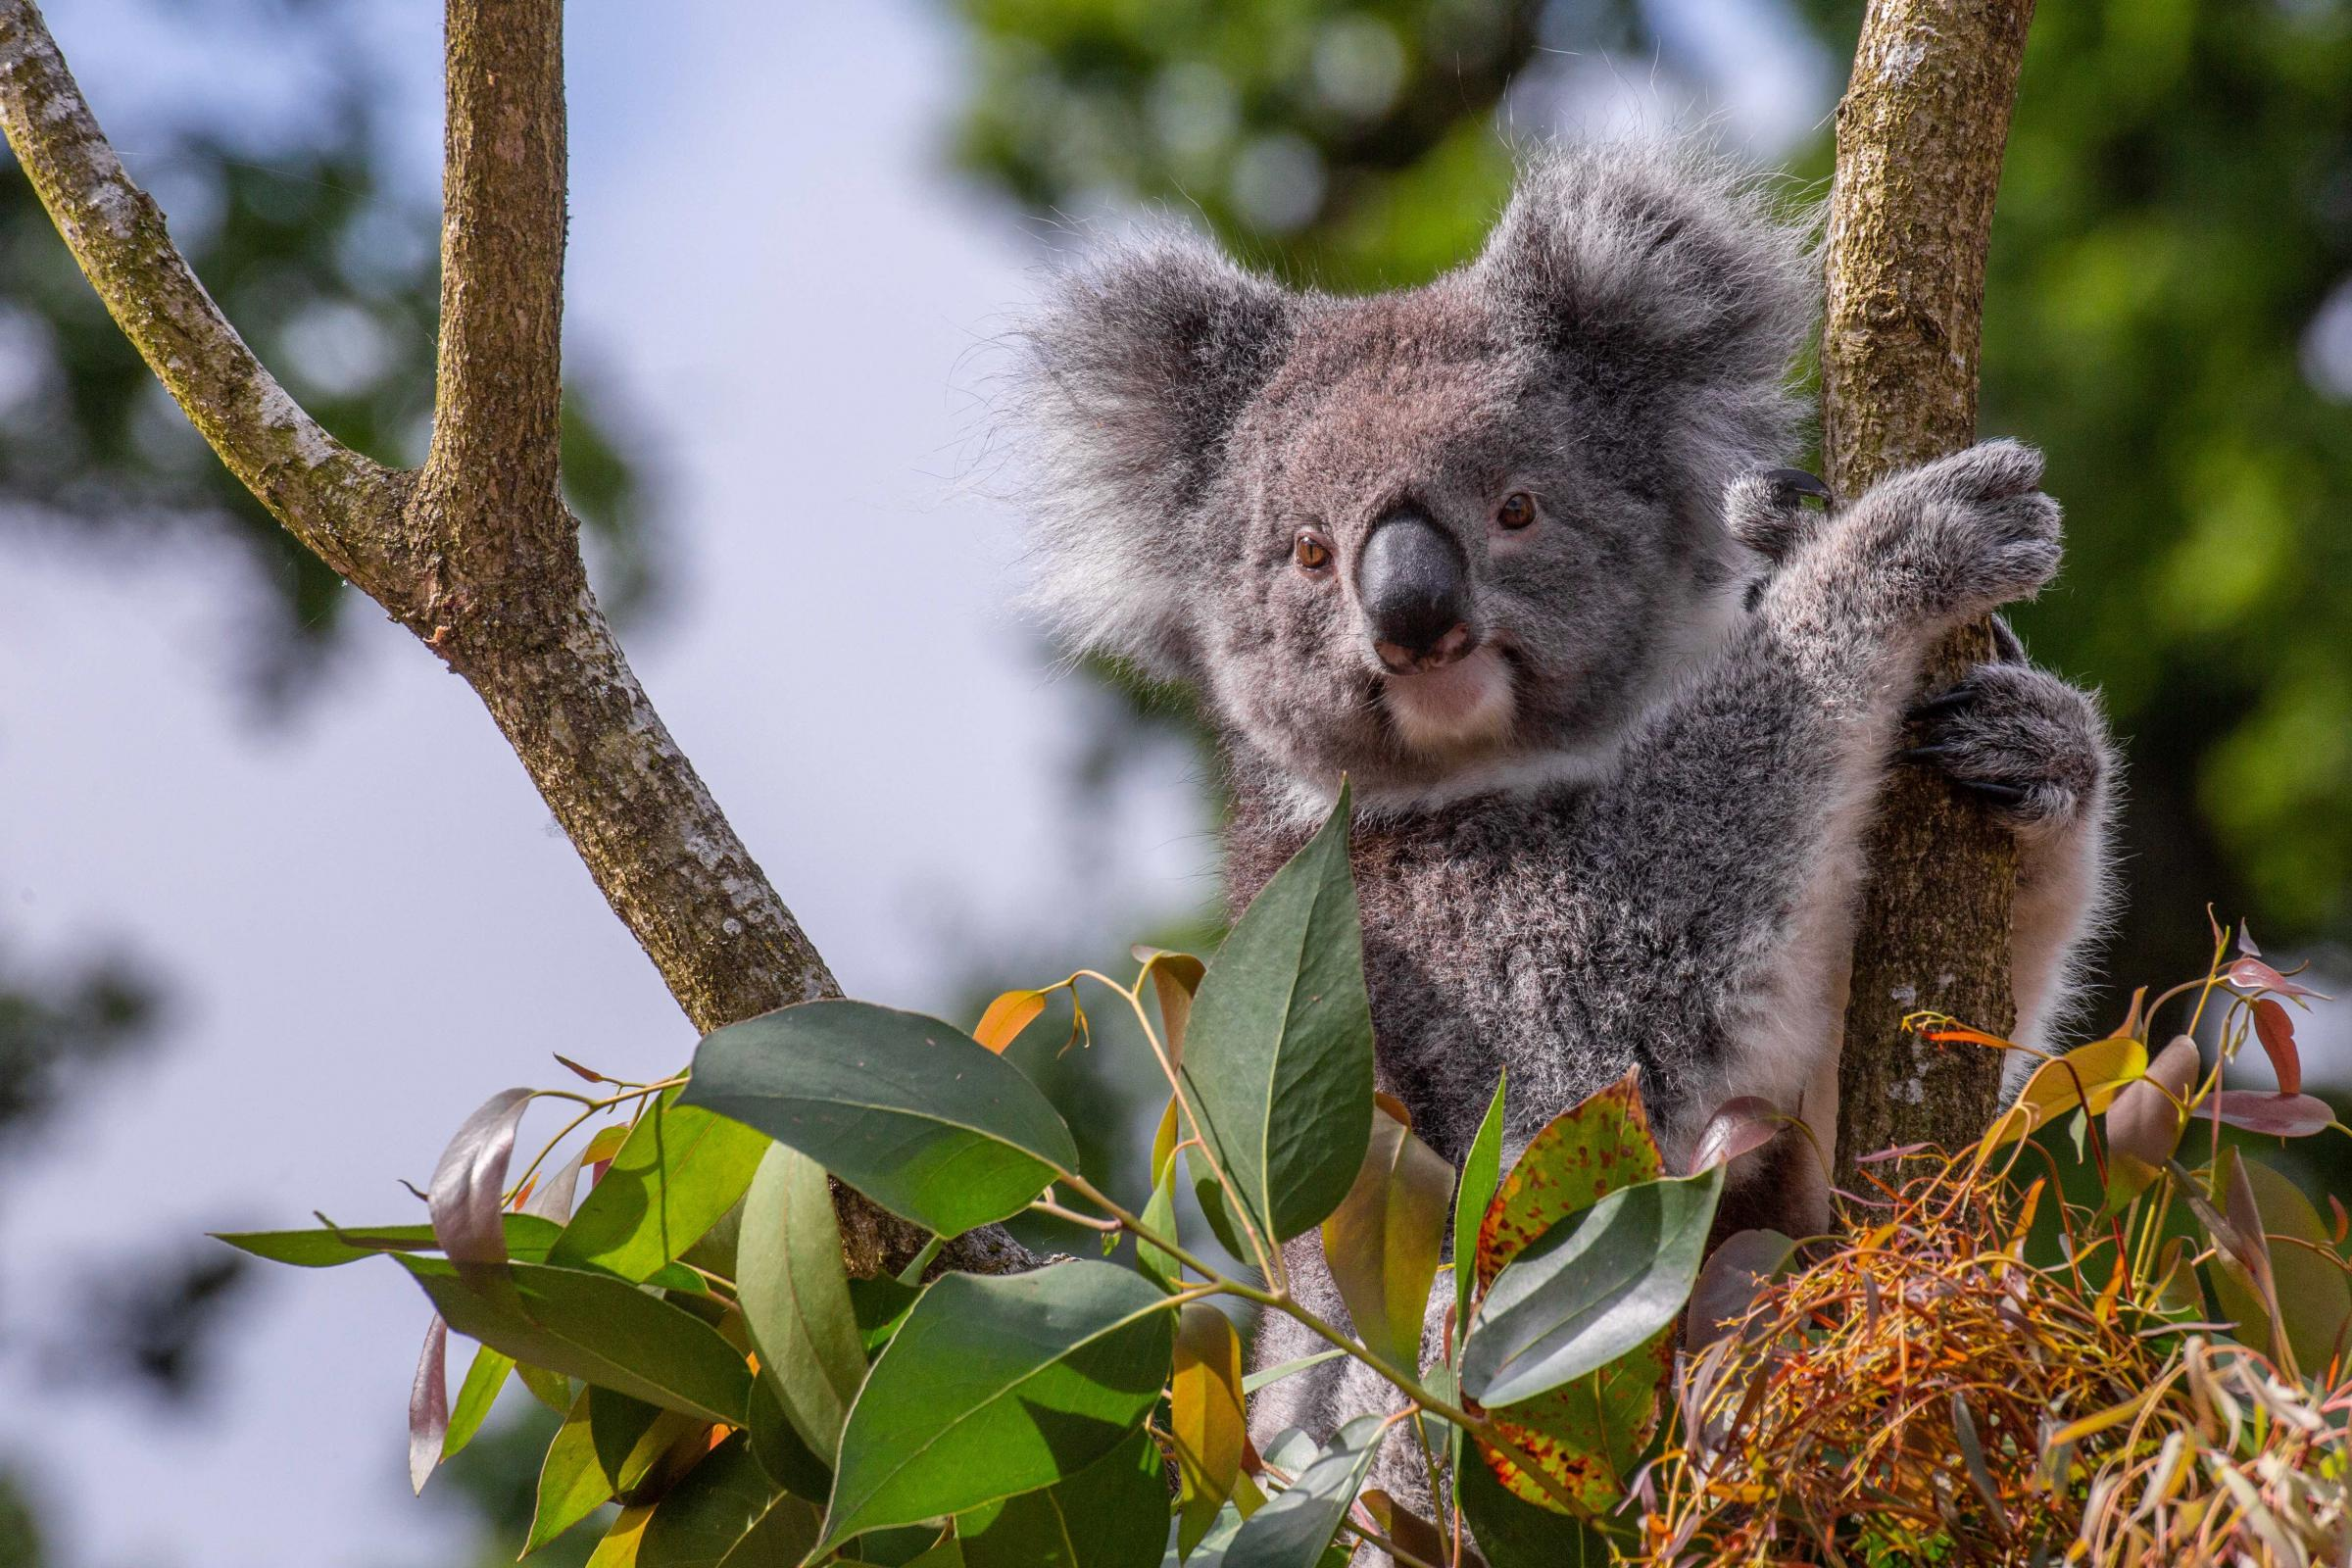 Koalas DNA could save wild species